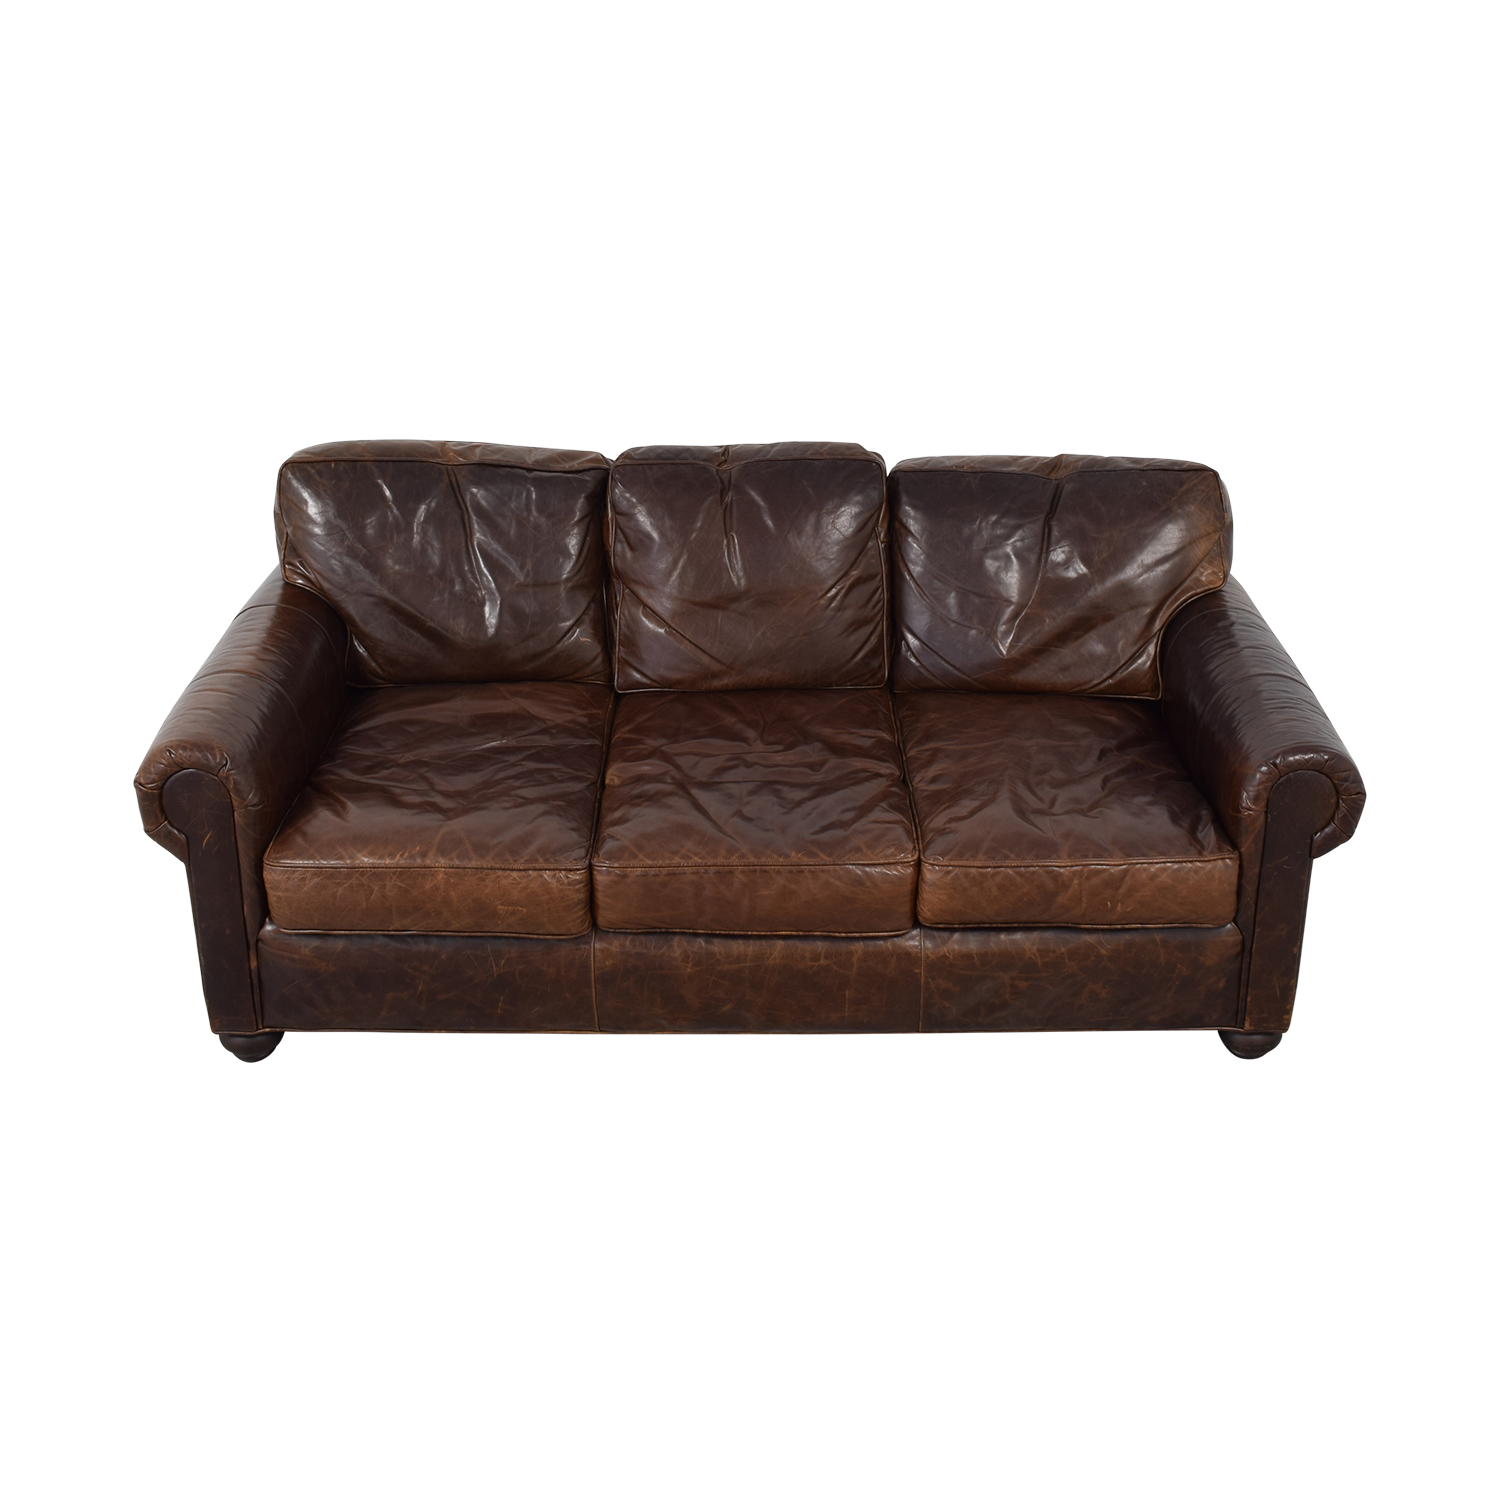 Restoration Hardware Restoration Hardware Lancaster Leather Sofa nj